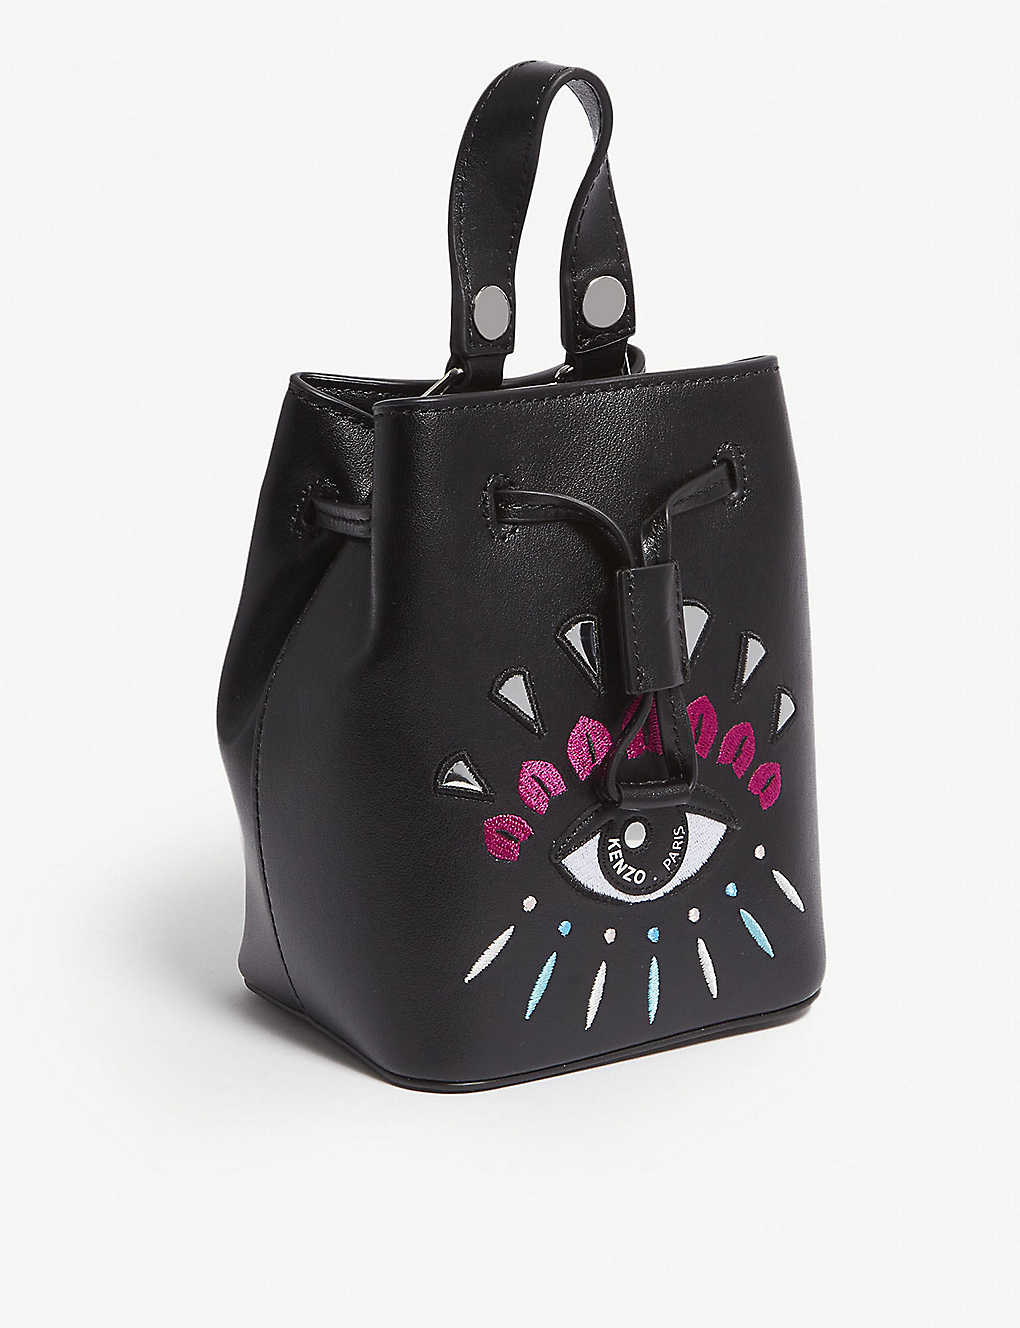 83a8b85f26 KENZO - Metallic eye mini leather bucket bag | Selfridges.com